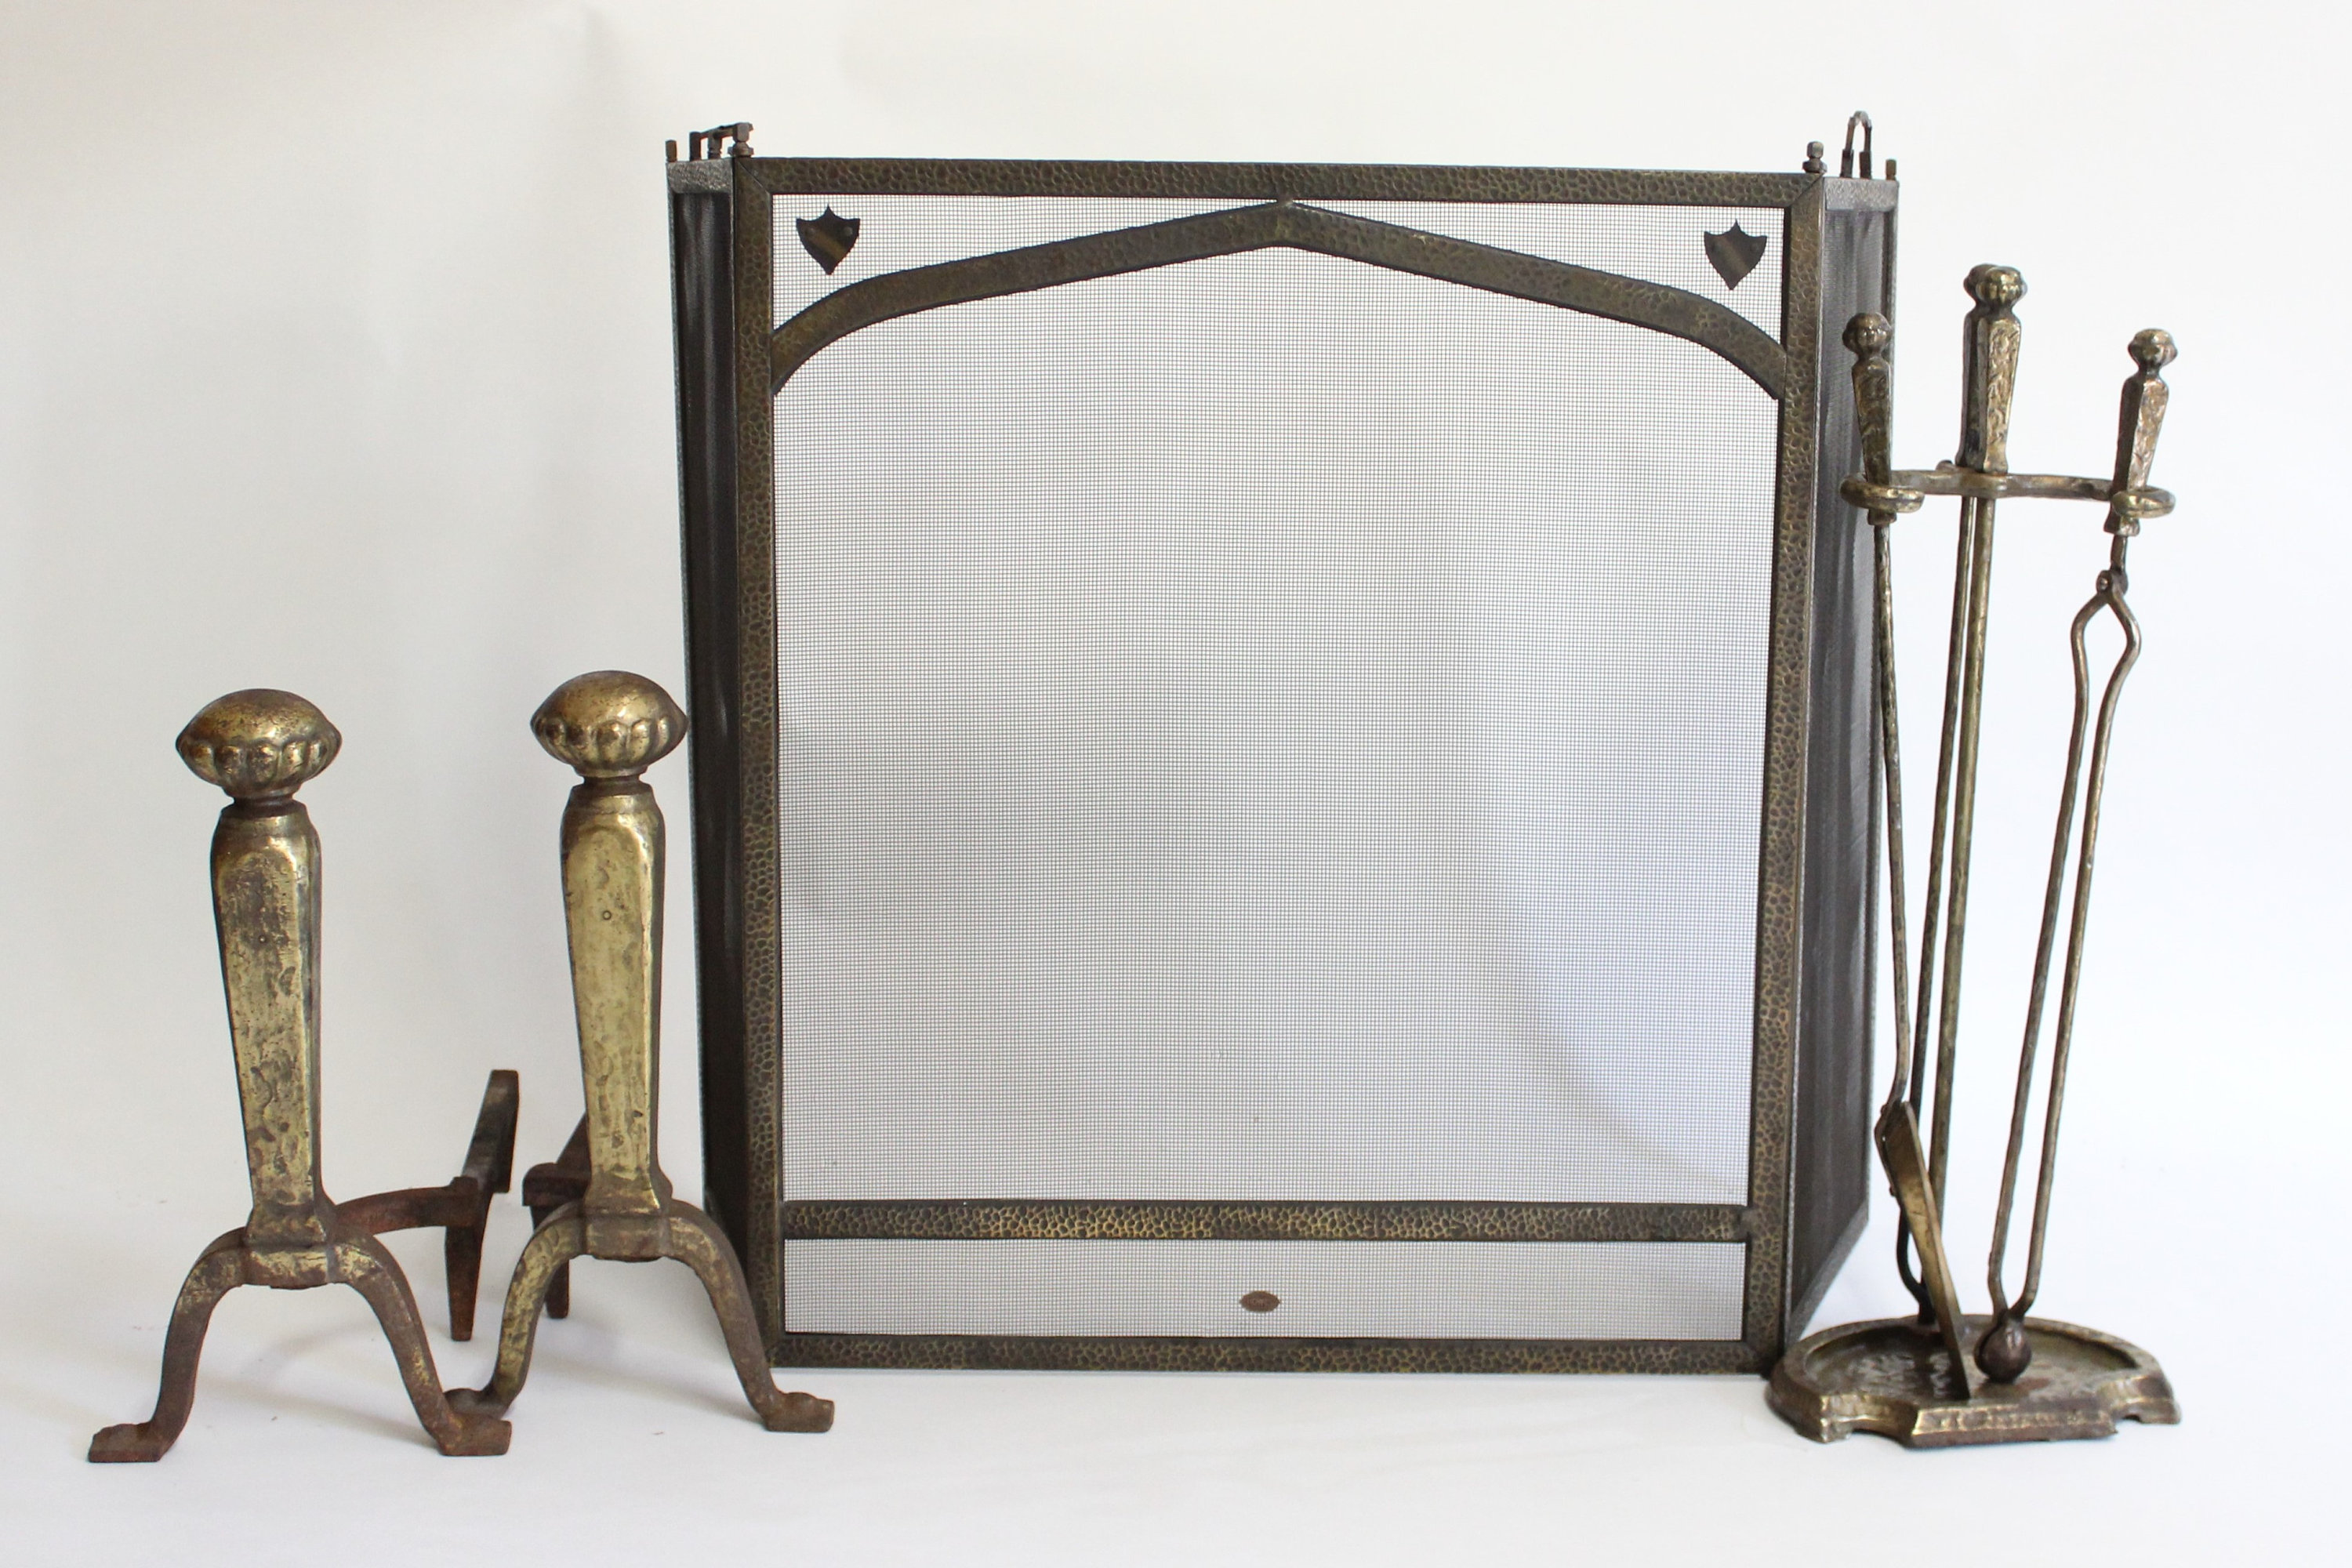 Wrought Iron Fireplace tools Luxury Antique S M Howes Pany Hammered Wrought Iron Fireplace Set andirons Fire Screen and Fireplace tools